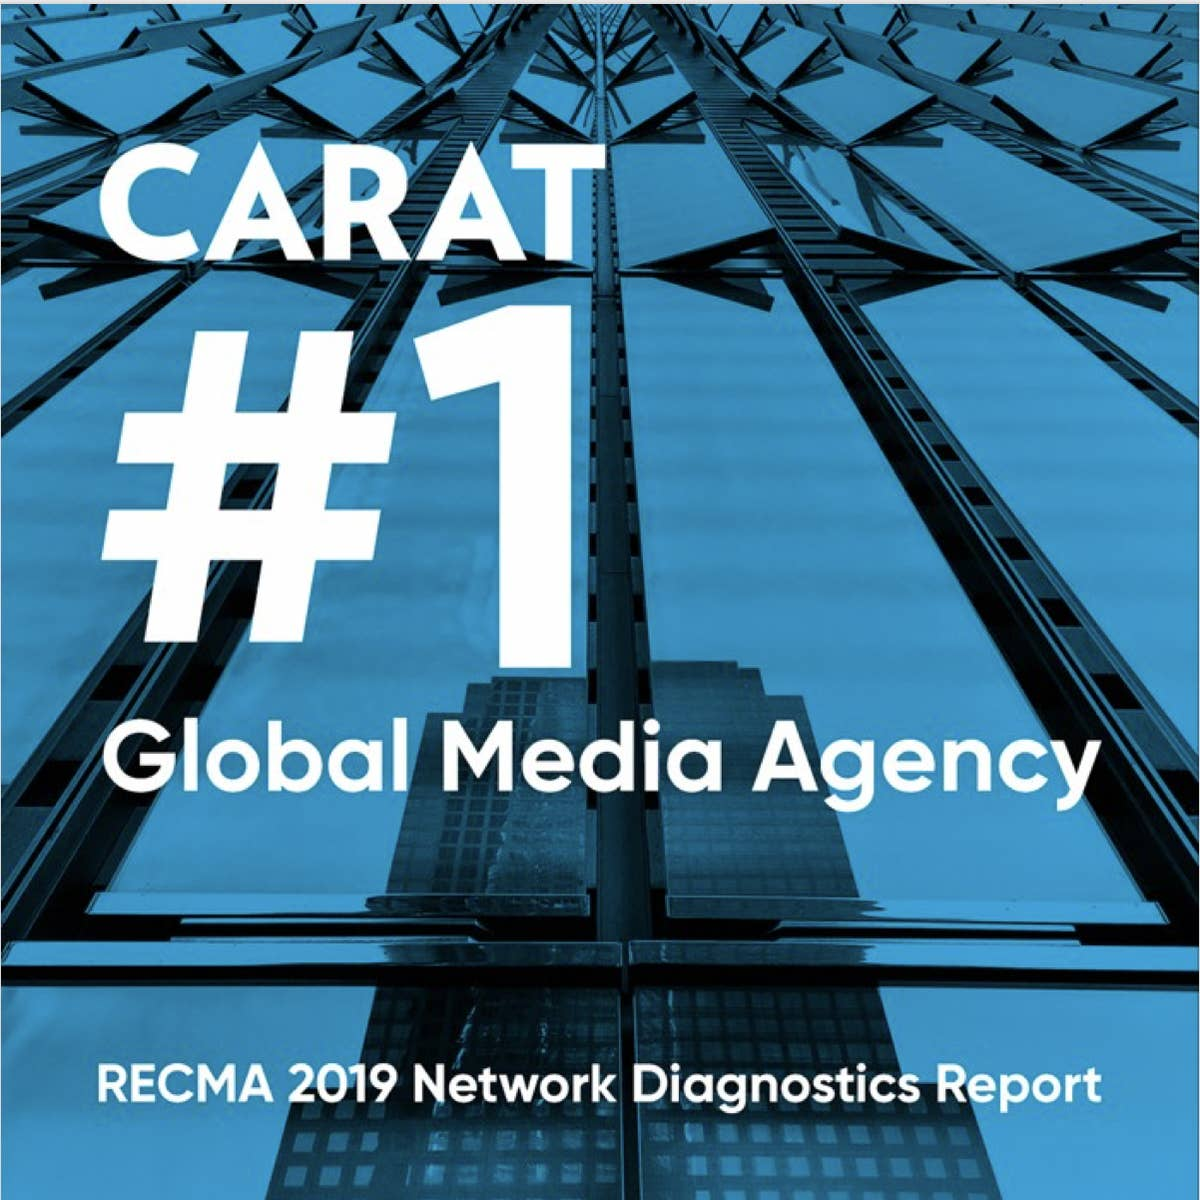 Carat retains #1 position globally in RECMA qualitative diagnostics report